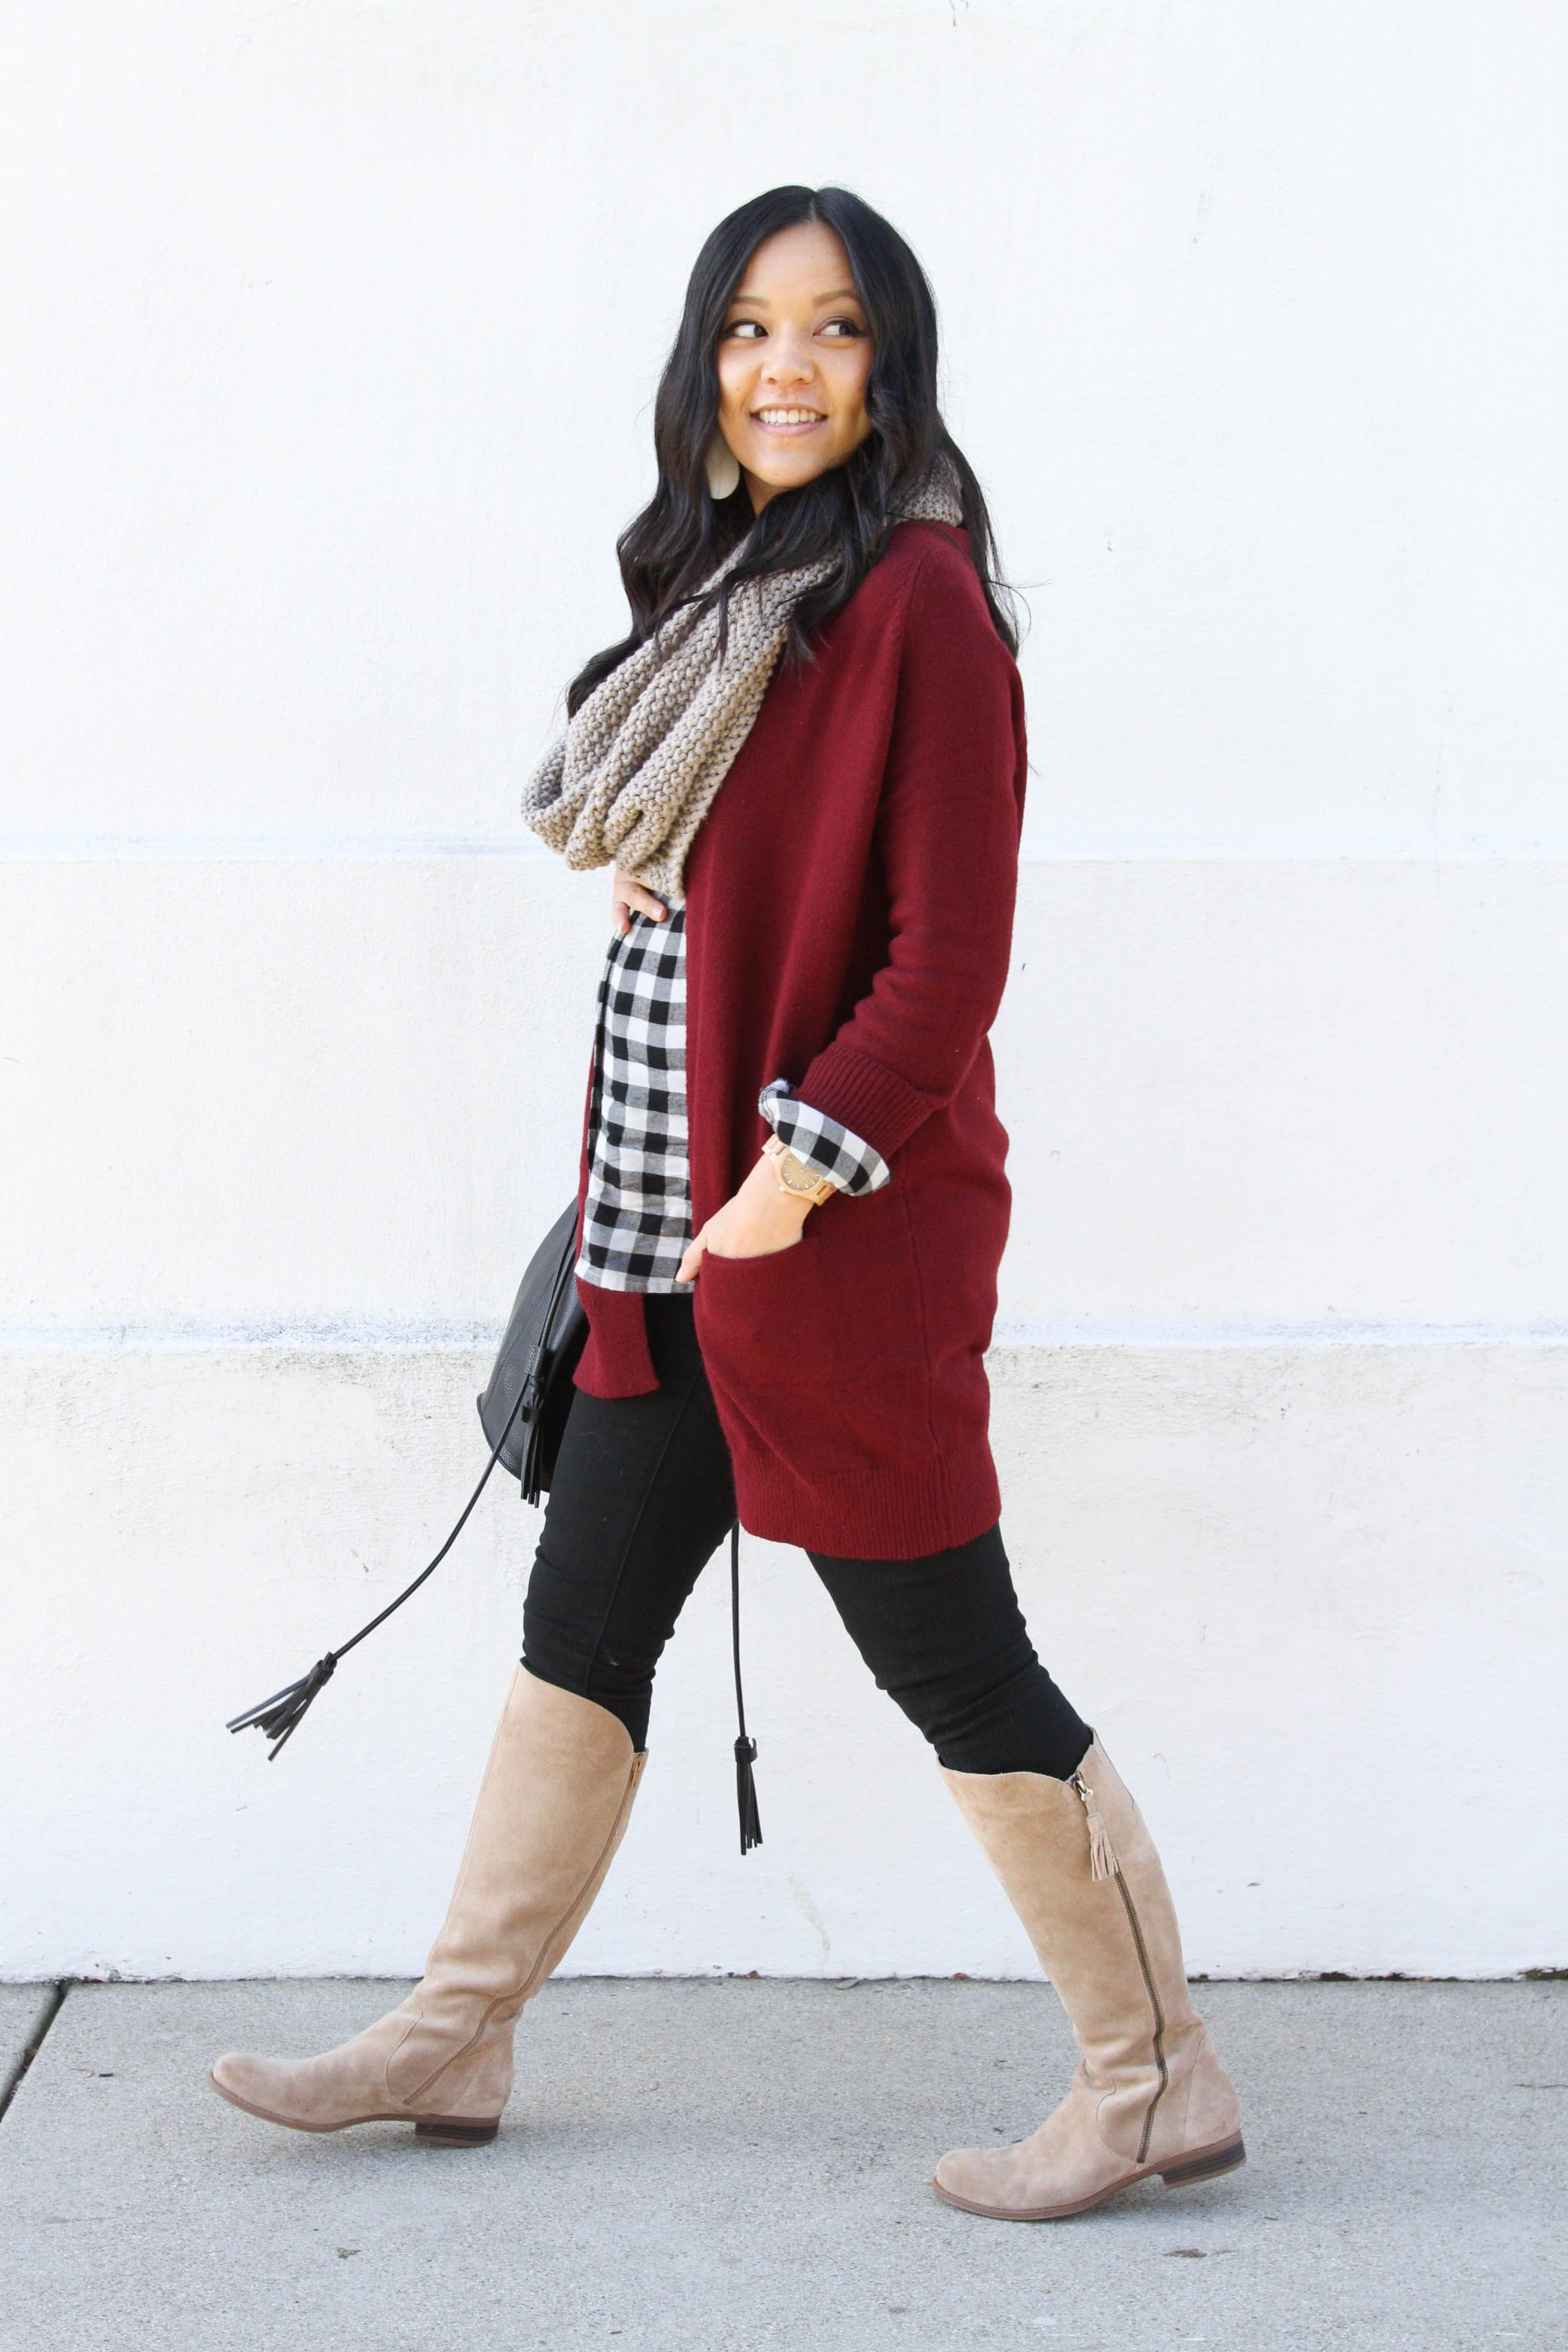 d068bb683b ... Tan Scarf +Maroon Cardigan + Boots + Black Jeans + Gingham Top